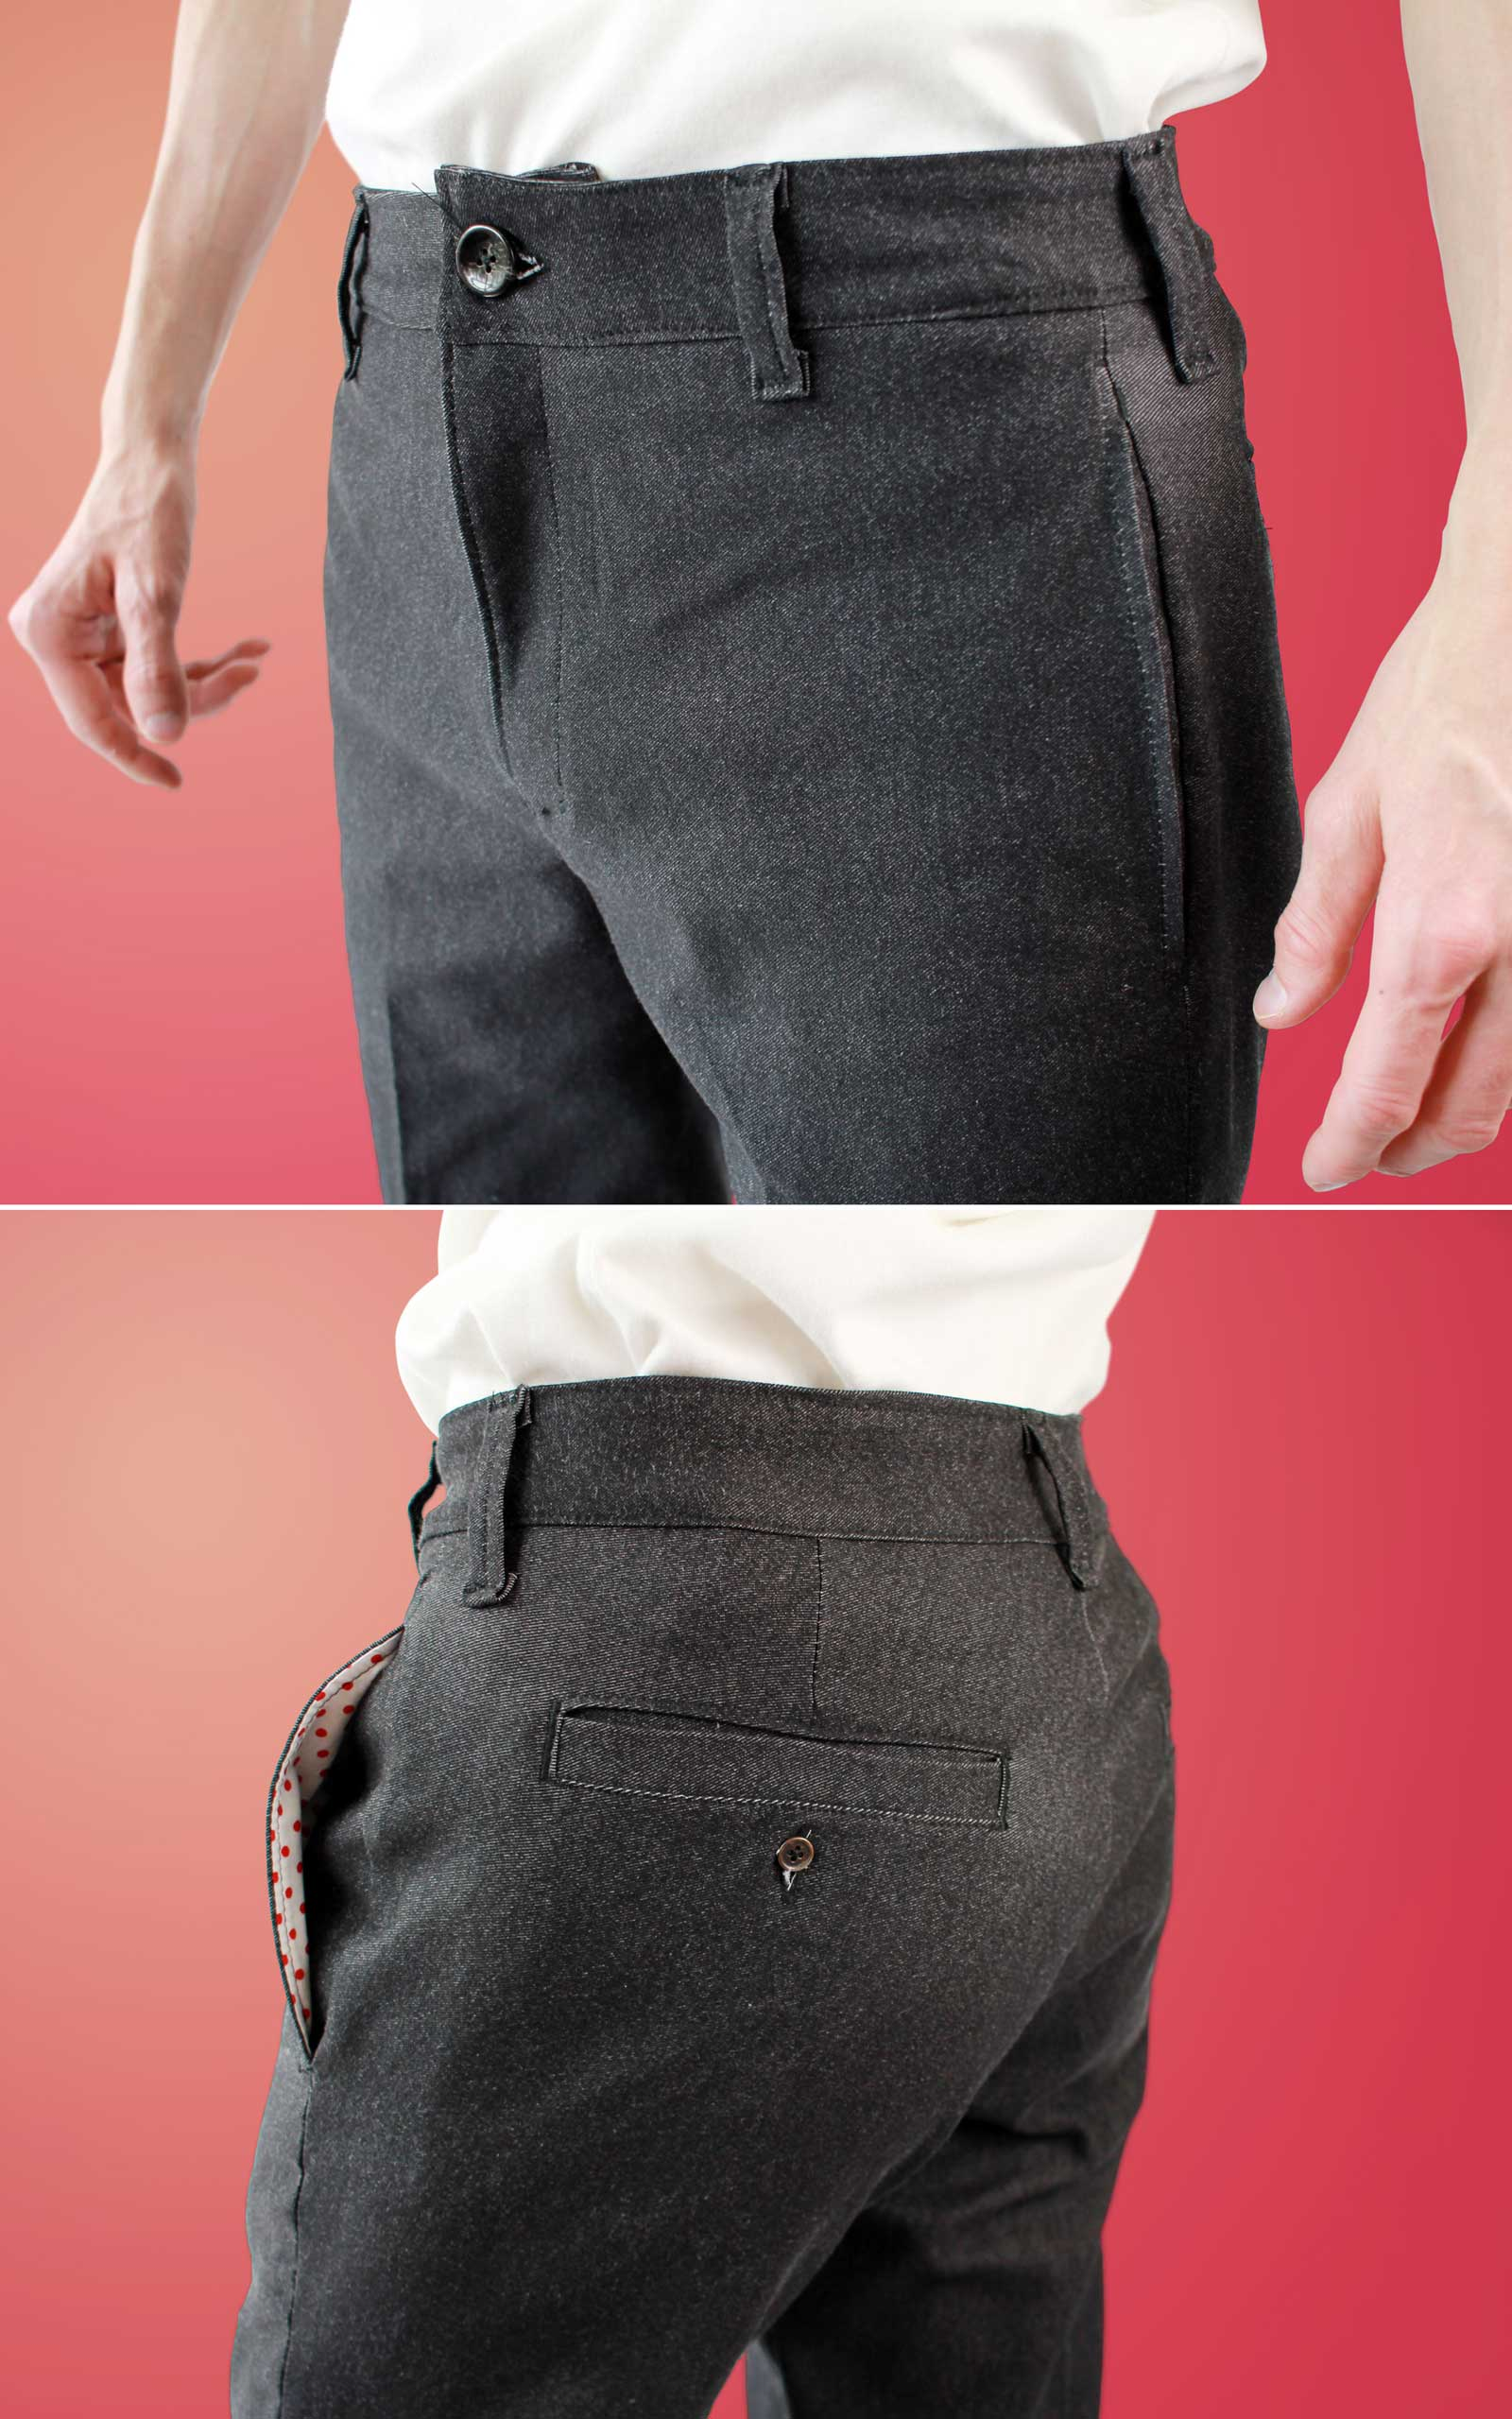 Mens Black Slacks Sewing Mistakes Close up